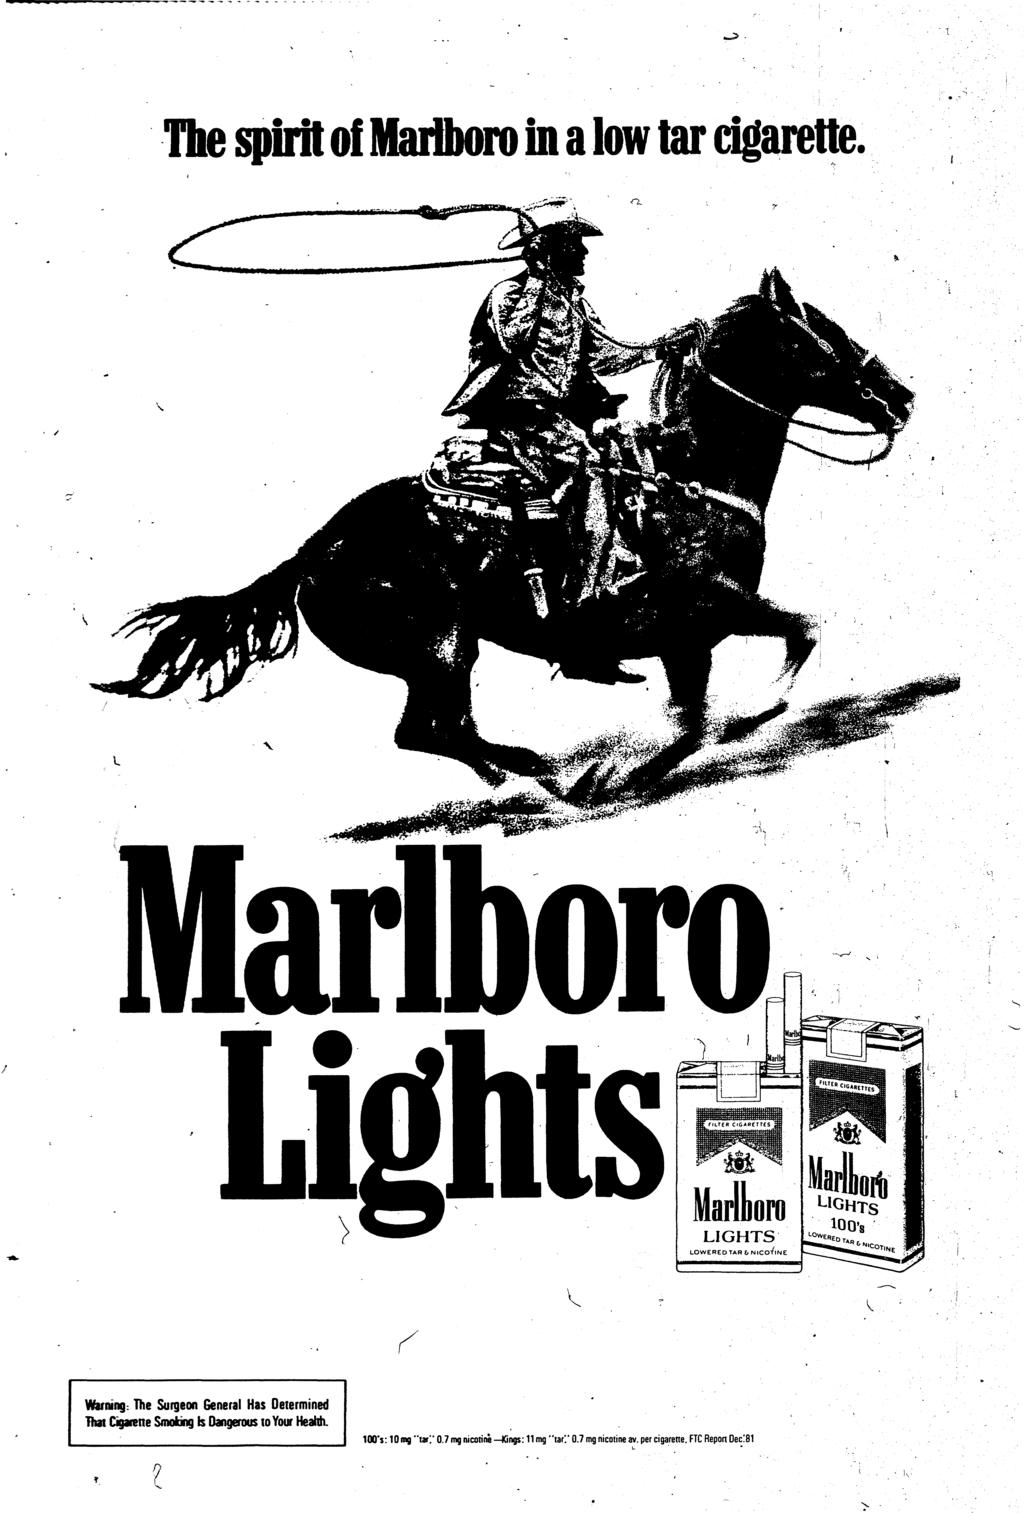 The spirit of Marlboro in a low tar cigarette V!